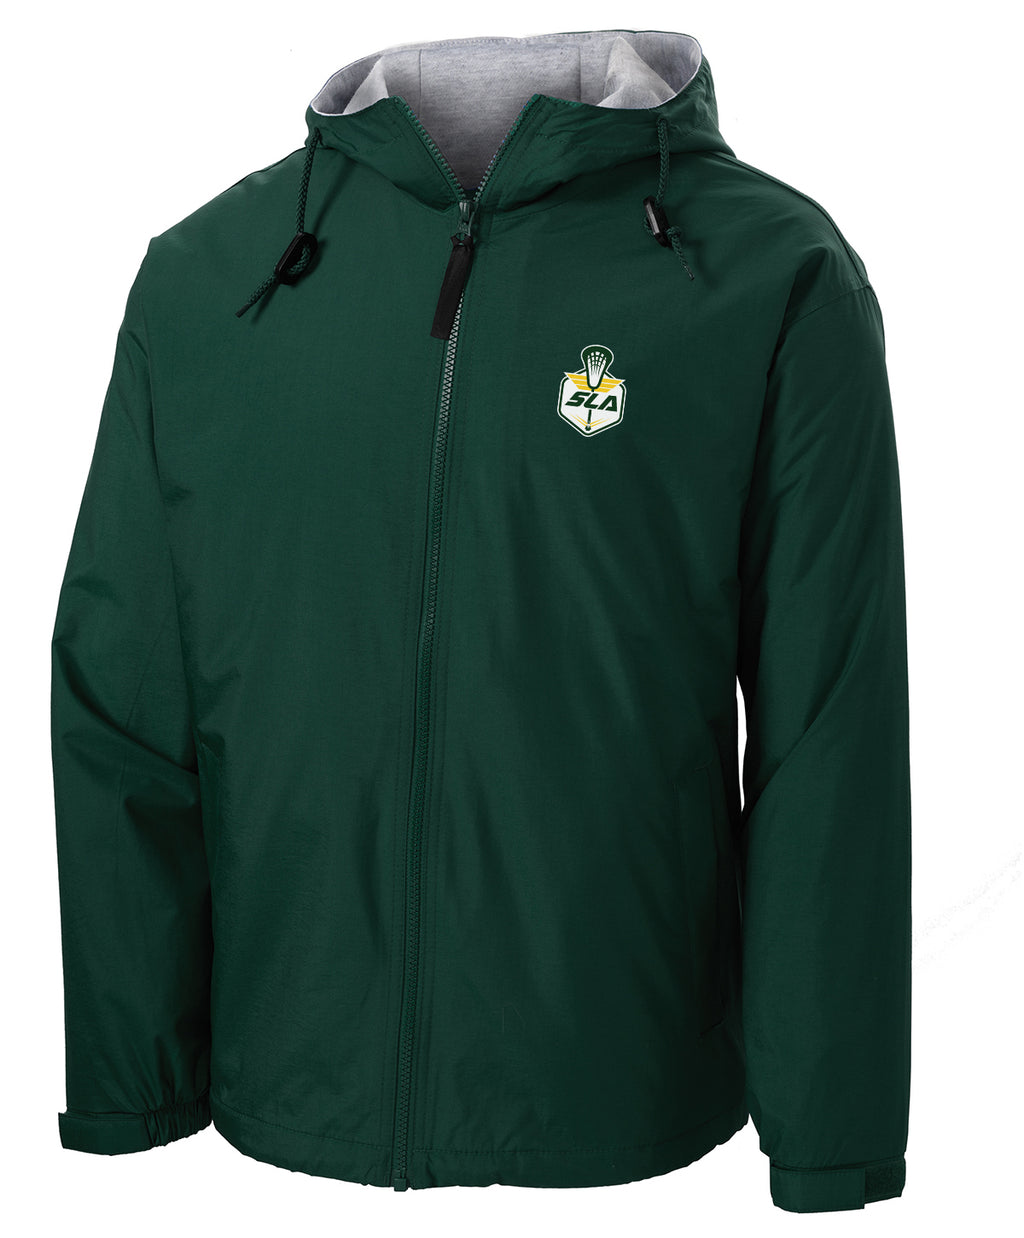 Sycamore Lacrosse Association Green Hooded Jacket